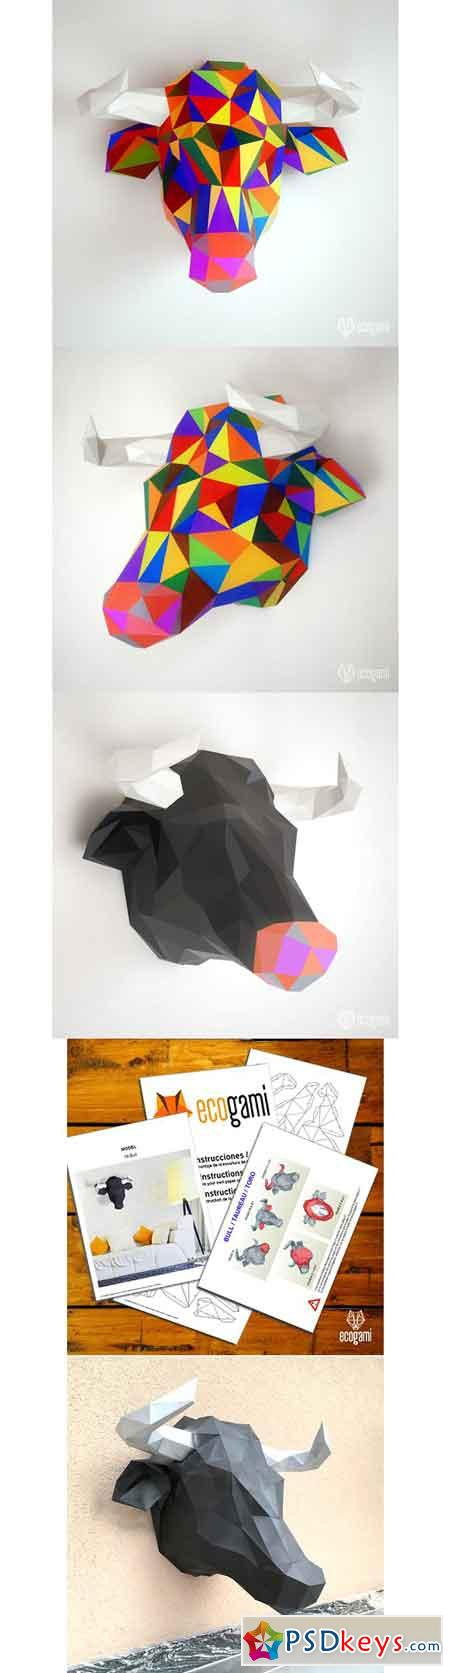 DIY papercraft project Bull trophy 2508526